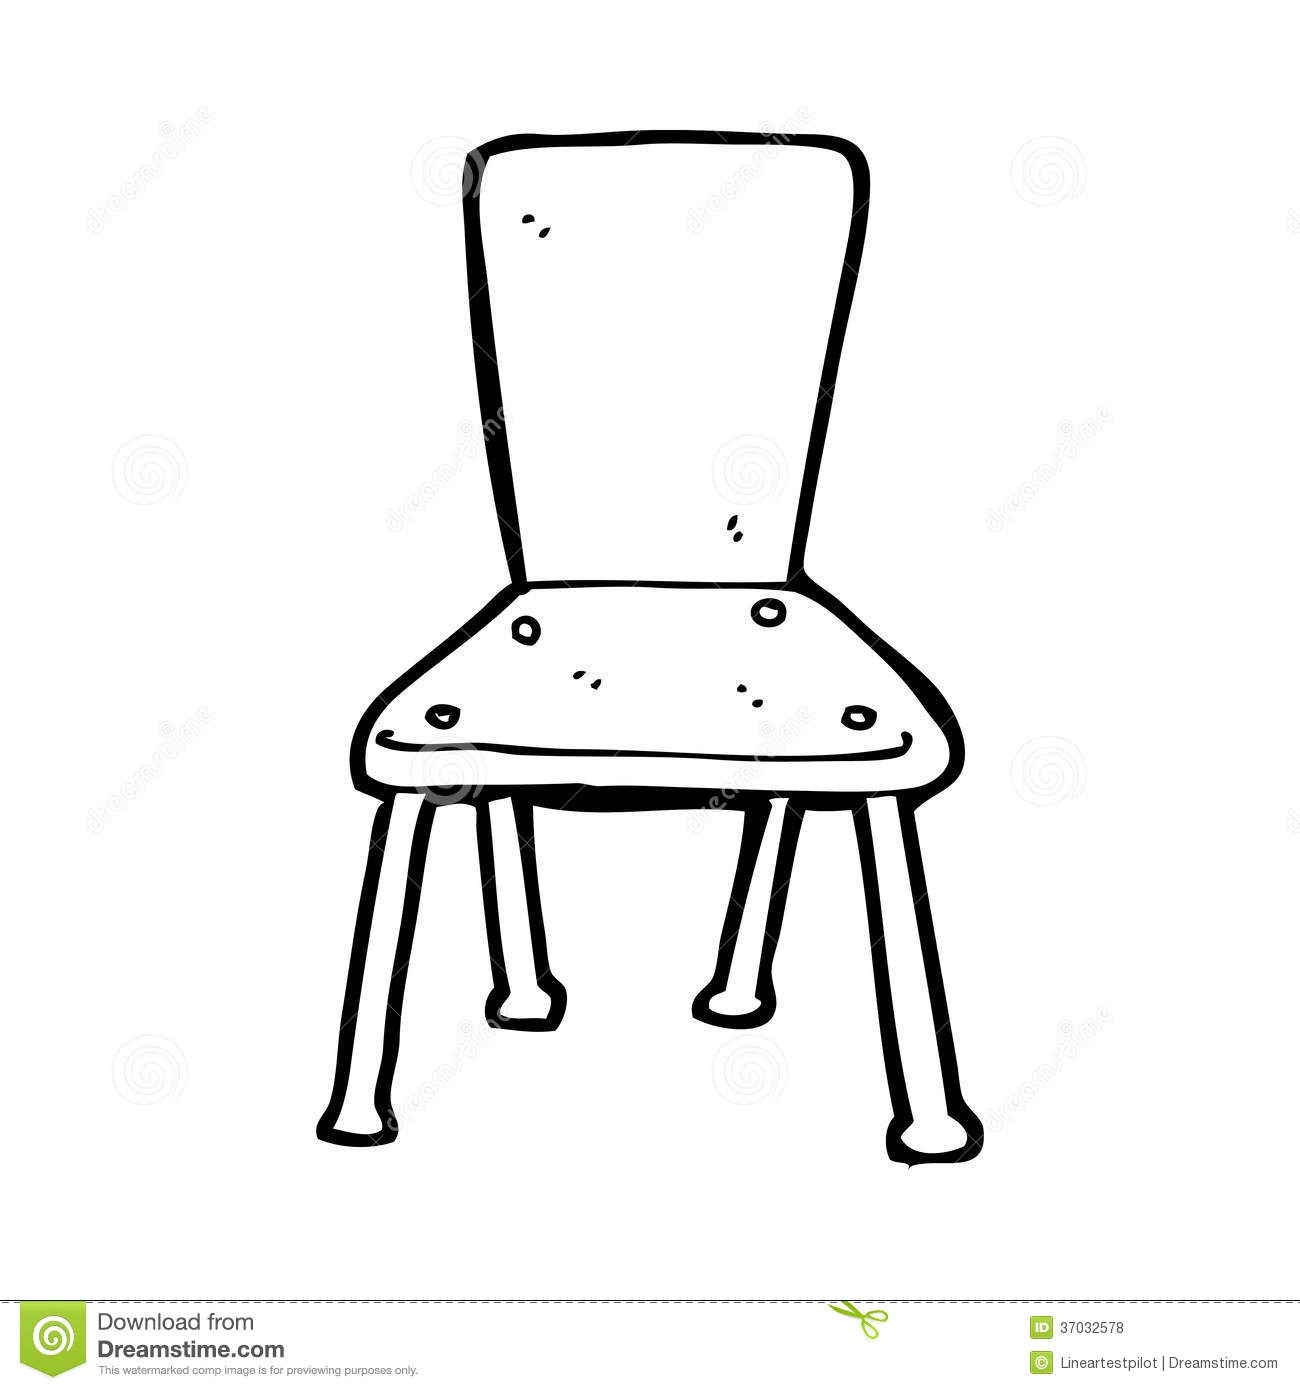 chair clipart black and white. royalty-free stock photo chair clipart black and white